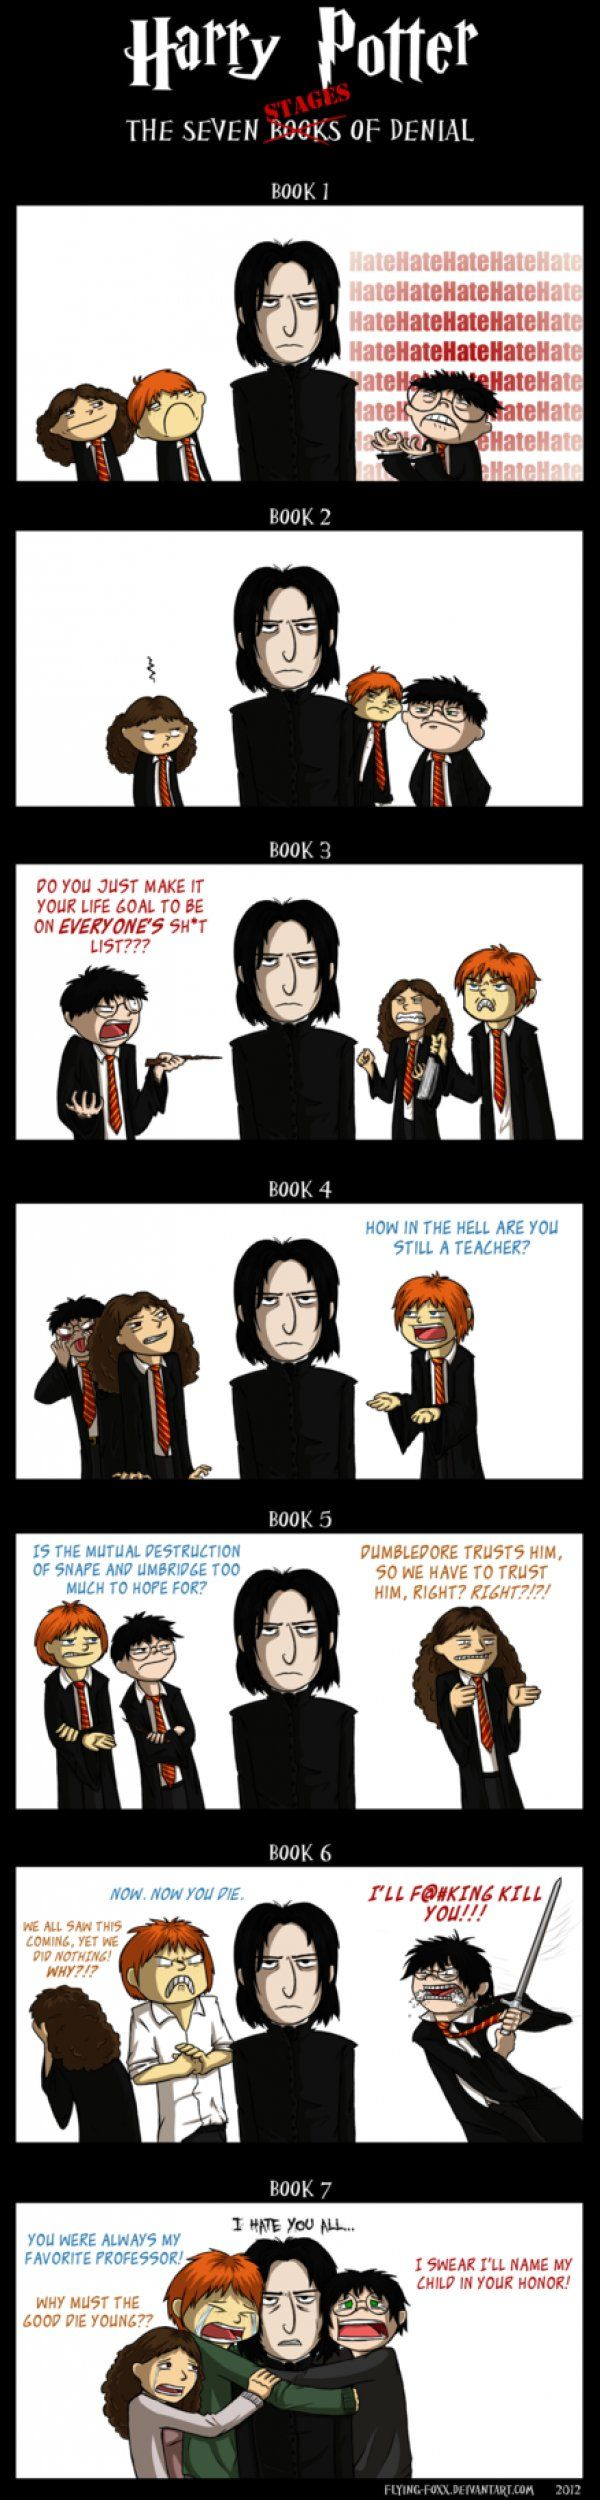 really made me LOL http://www.dorkly.com/picture/56941/harry-potter-the-7-stages-of-denial